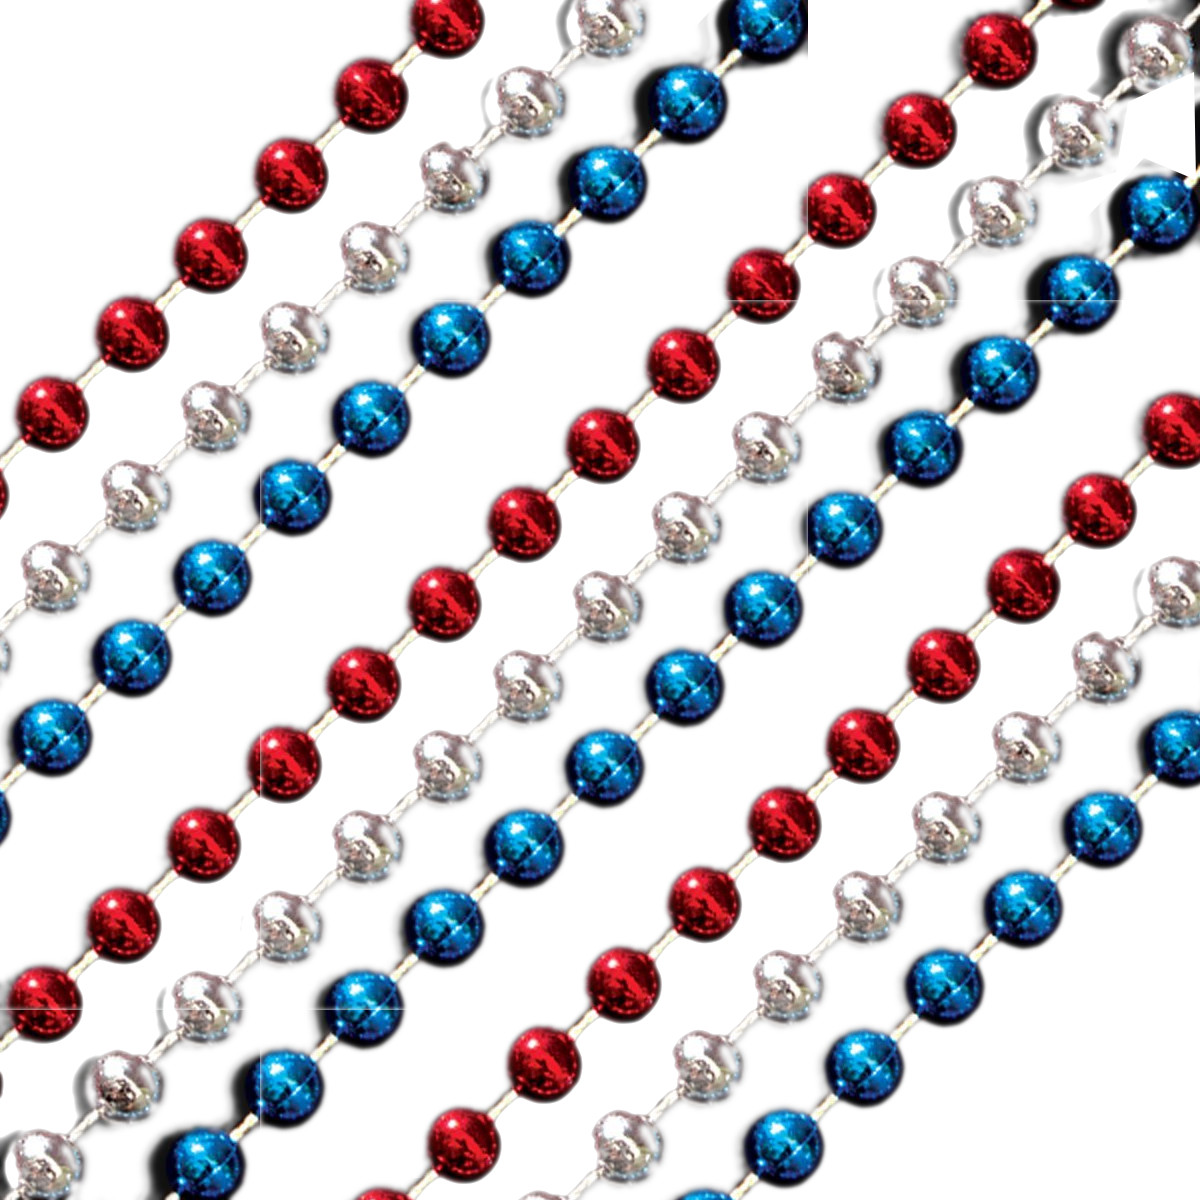 Red White and Blue Round Bead Necklace Pack of 12 4th of July